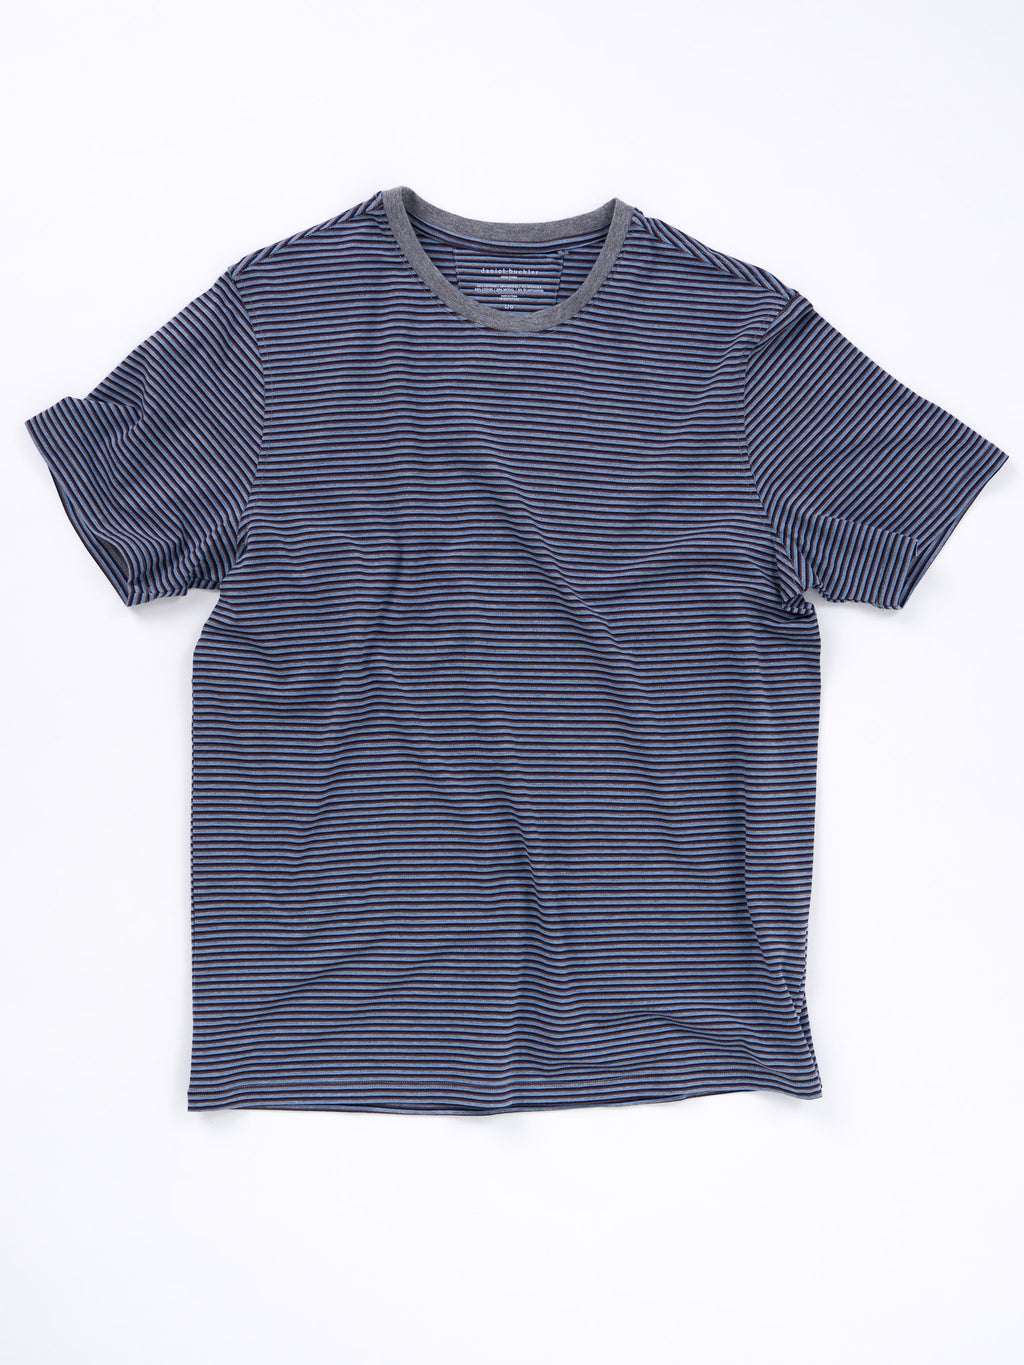 Cotton/Modal Tri-Stripe Crewneck